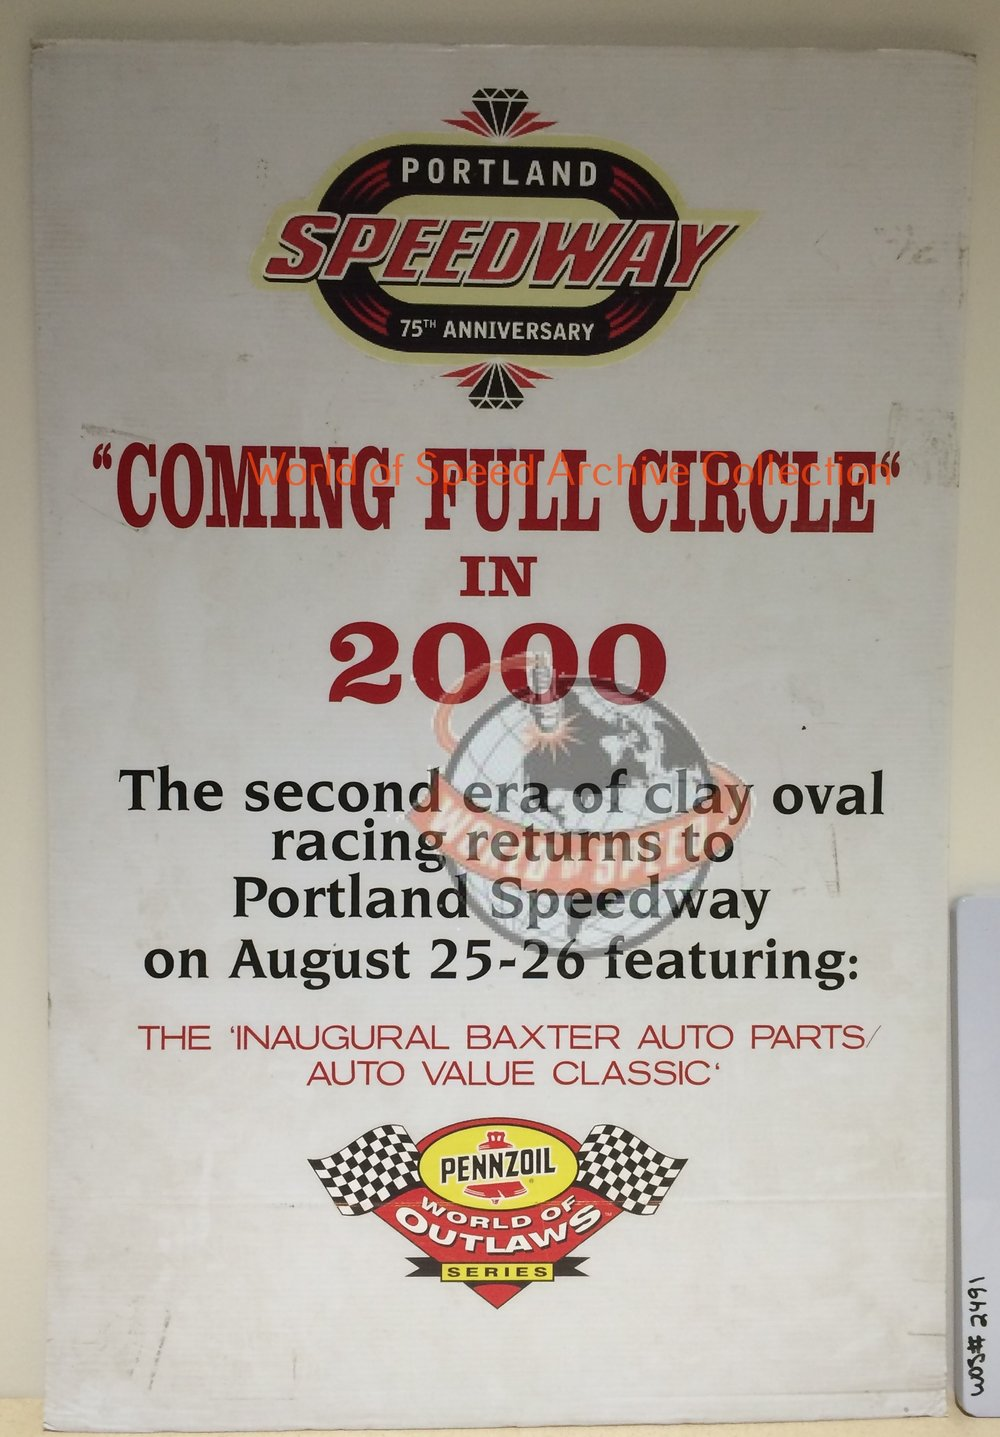 2000 World of Outlaw came to Portland Speedway for its 75th anniversary